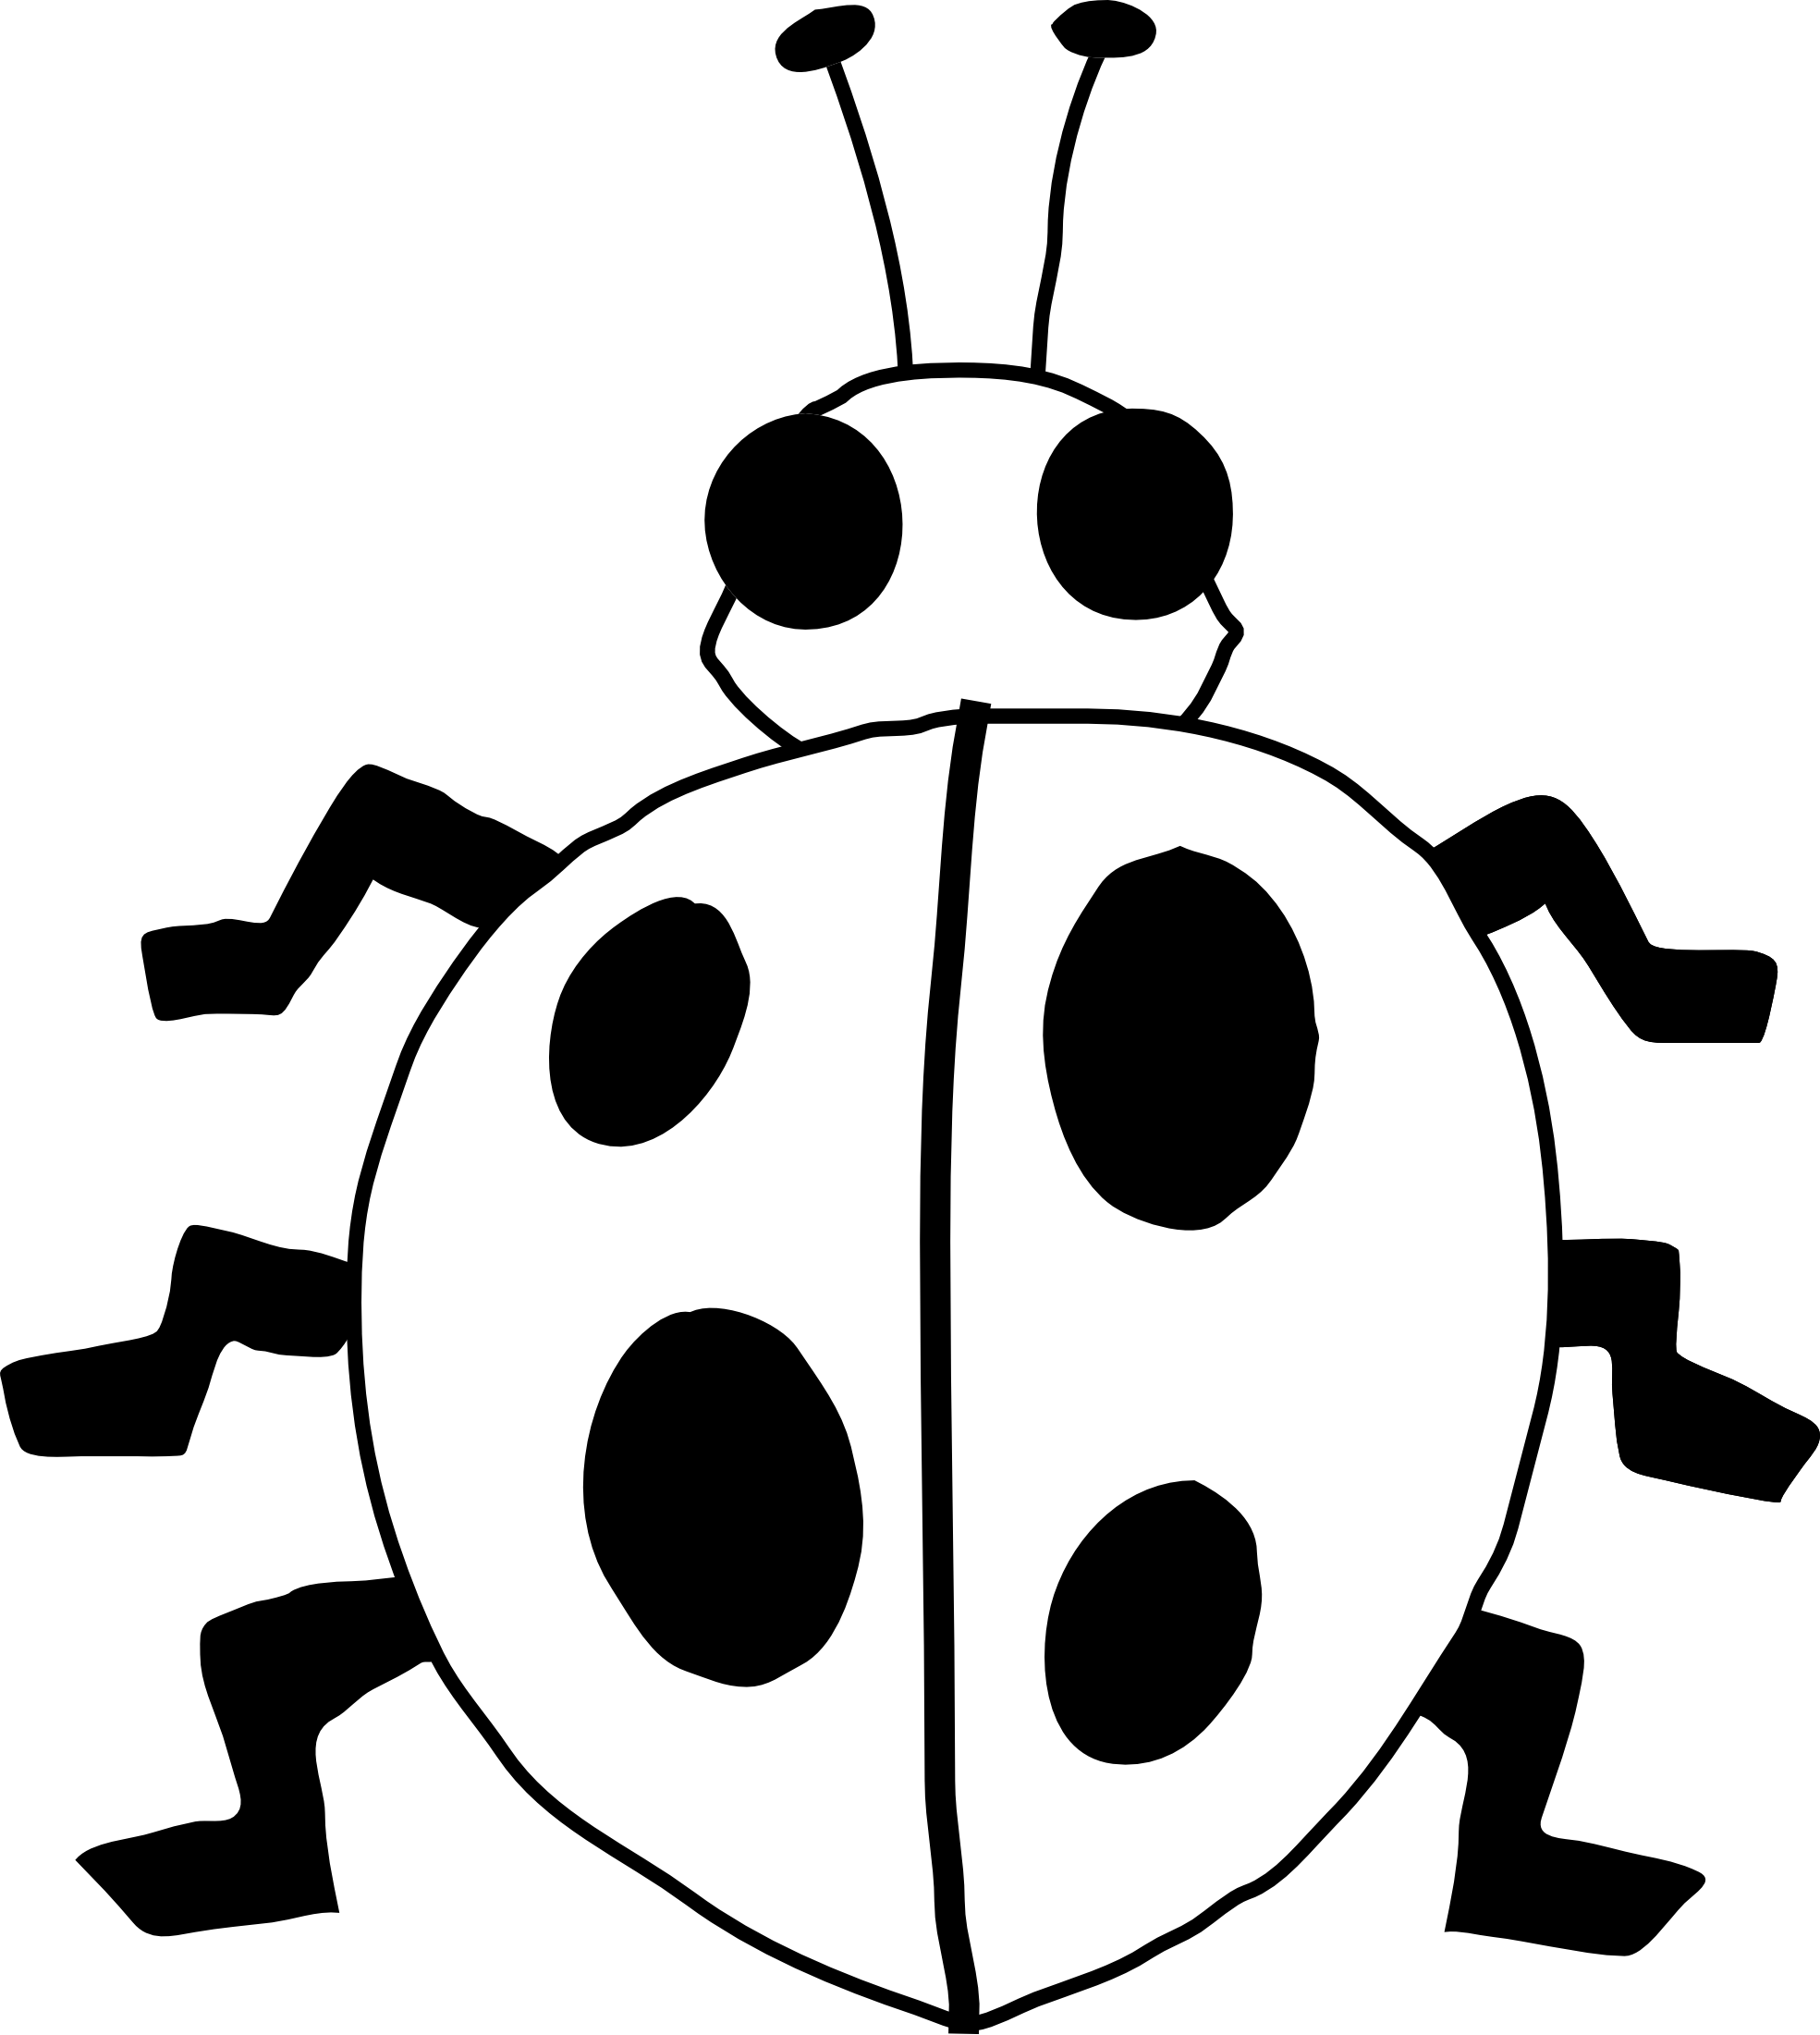 pirate flag clipart black and white clipart panda free